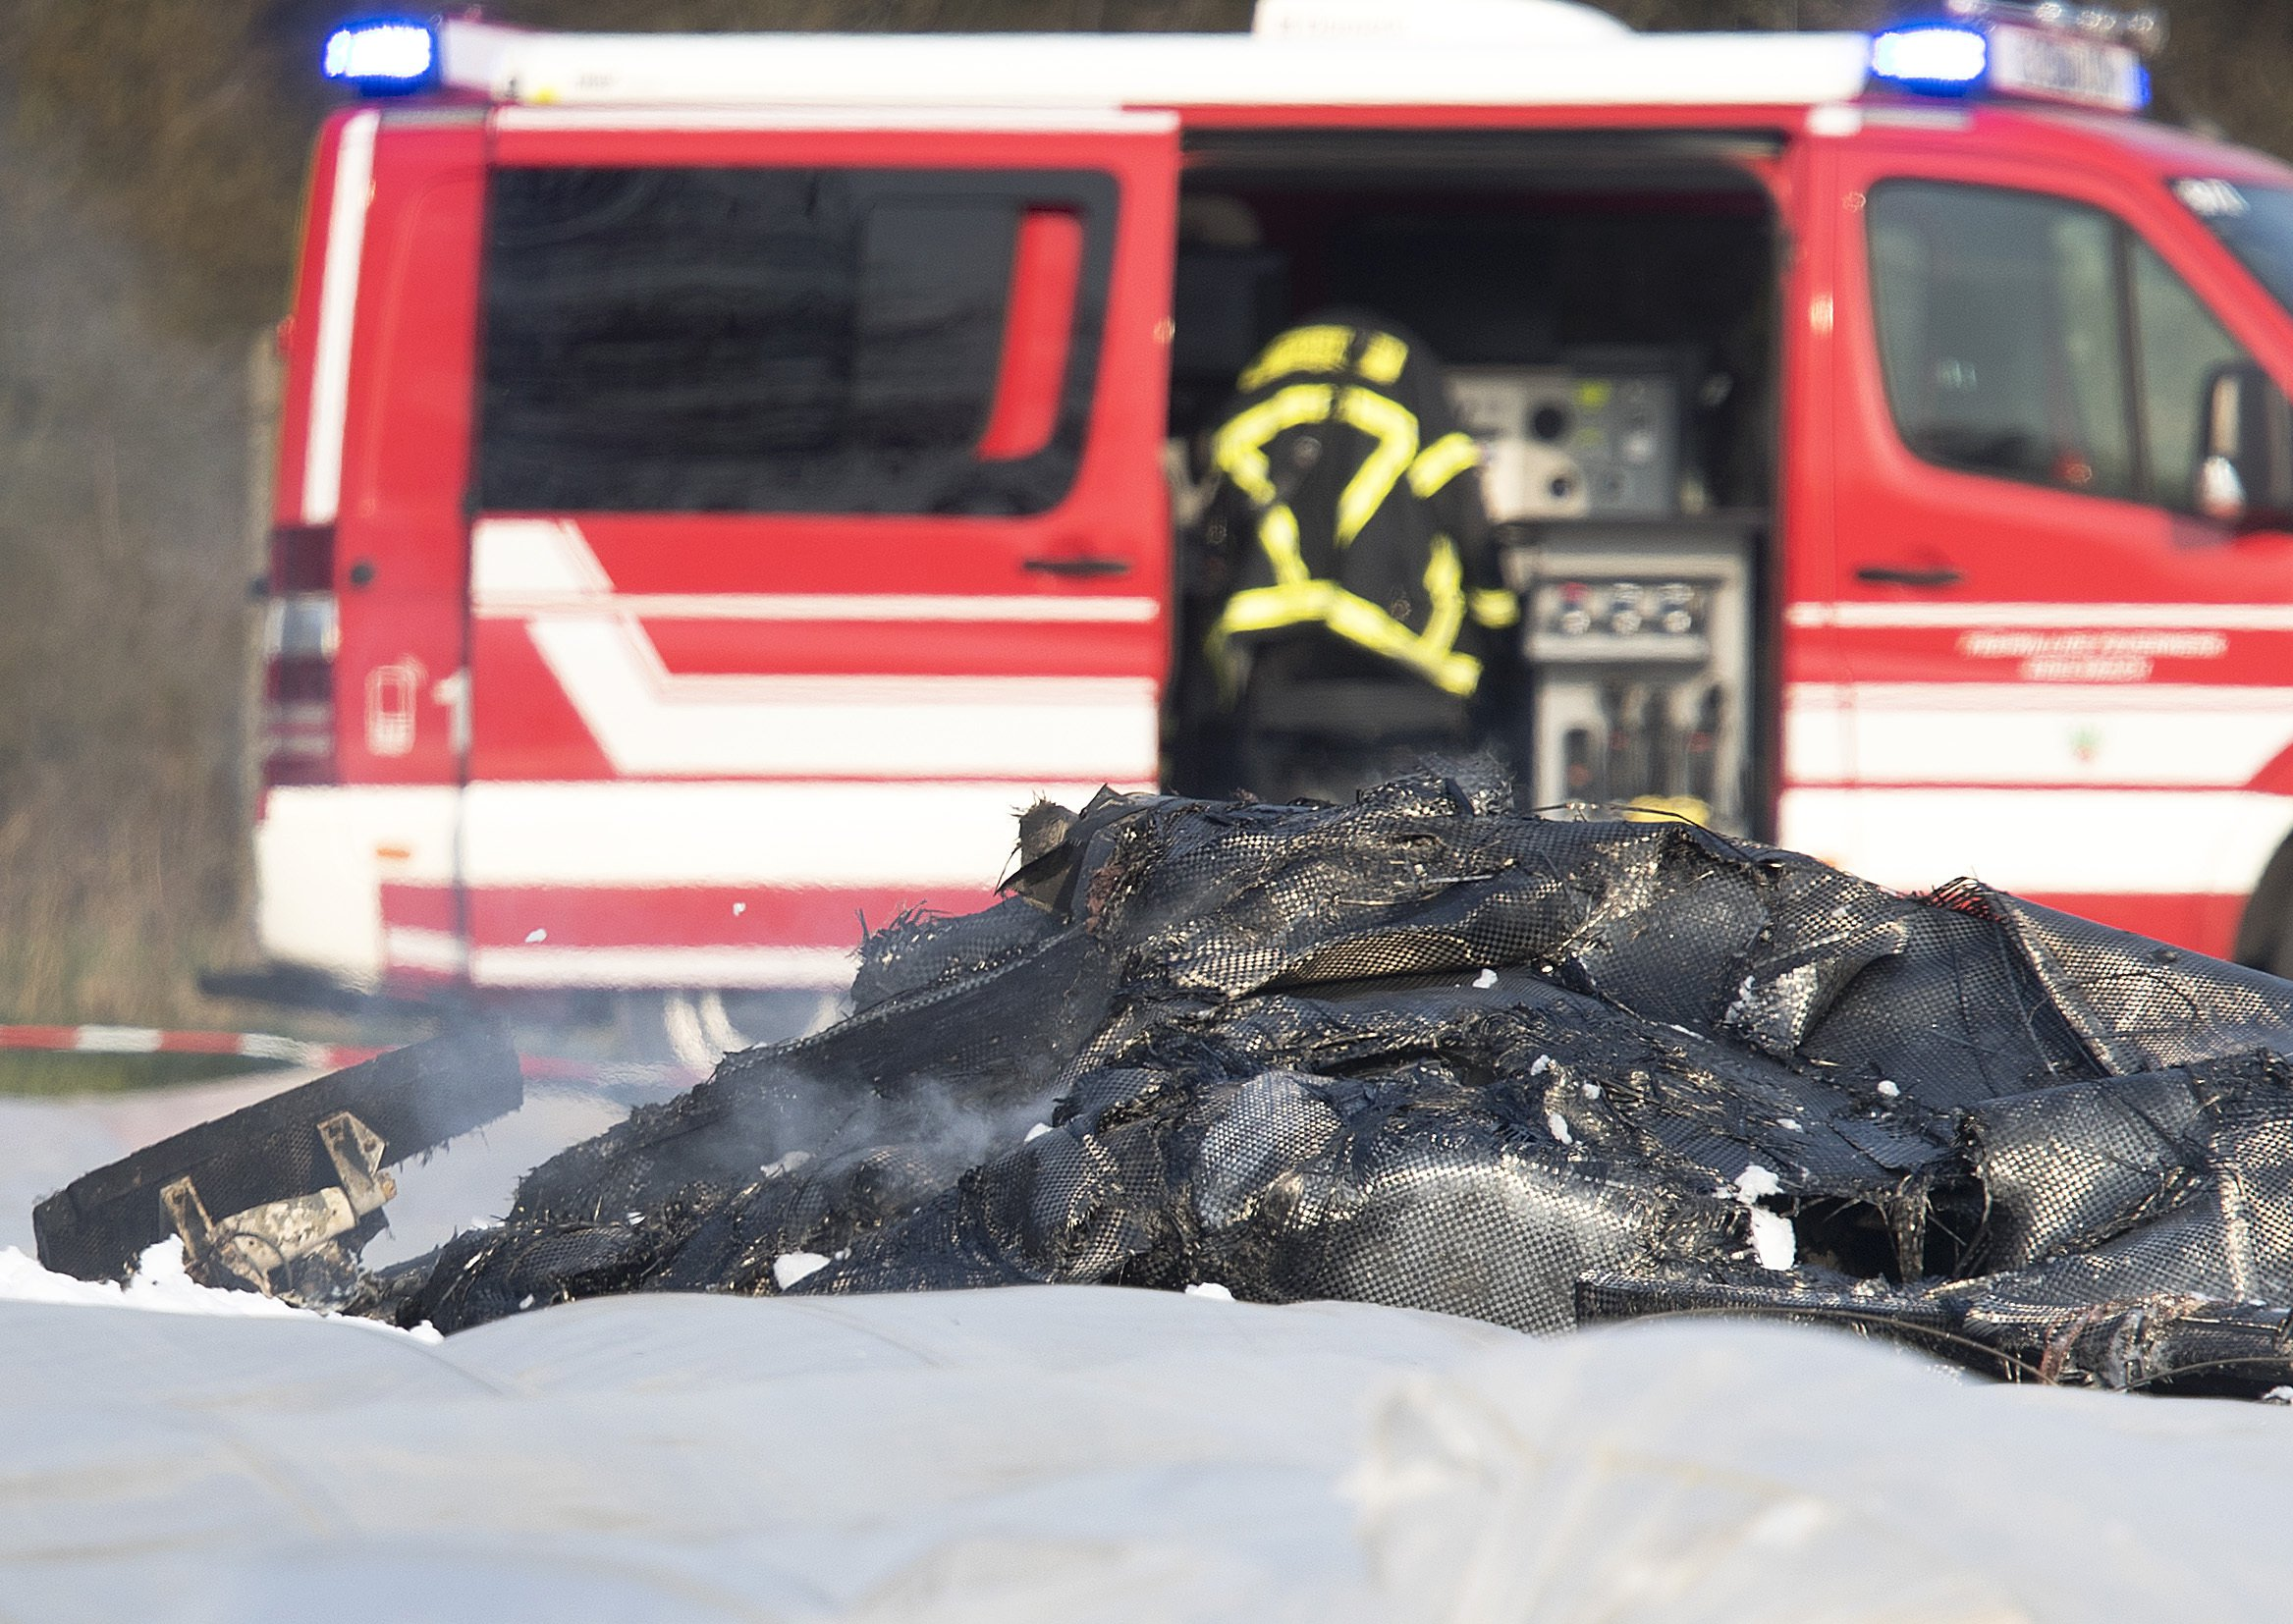 The burnt out debris of a small aircraft lies on a field near the small airport of Egelsbach bear Frankfurt, Germany, Sunday, March 31, 2019, which crashed on approach to the airport. Russian airline S7 says co-owner Natalia Fileva, one of Russia's richest women, has died in a small plane crash in Germany. (AP Photo/Michael Probst)